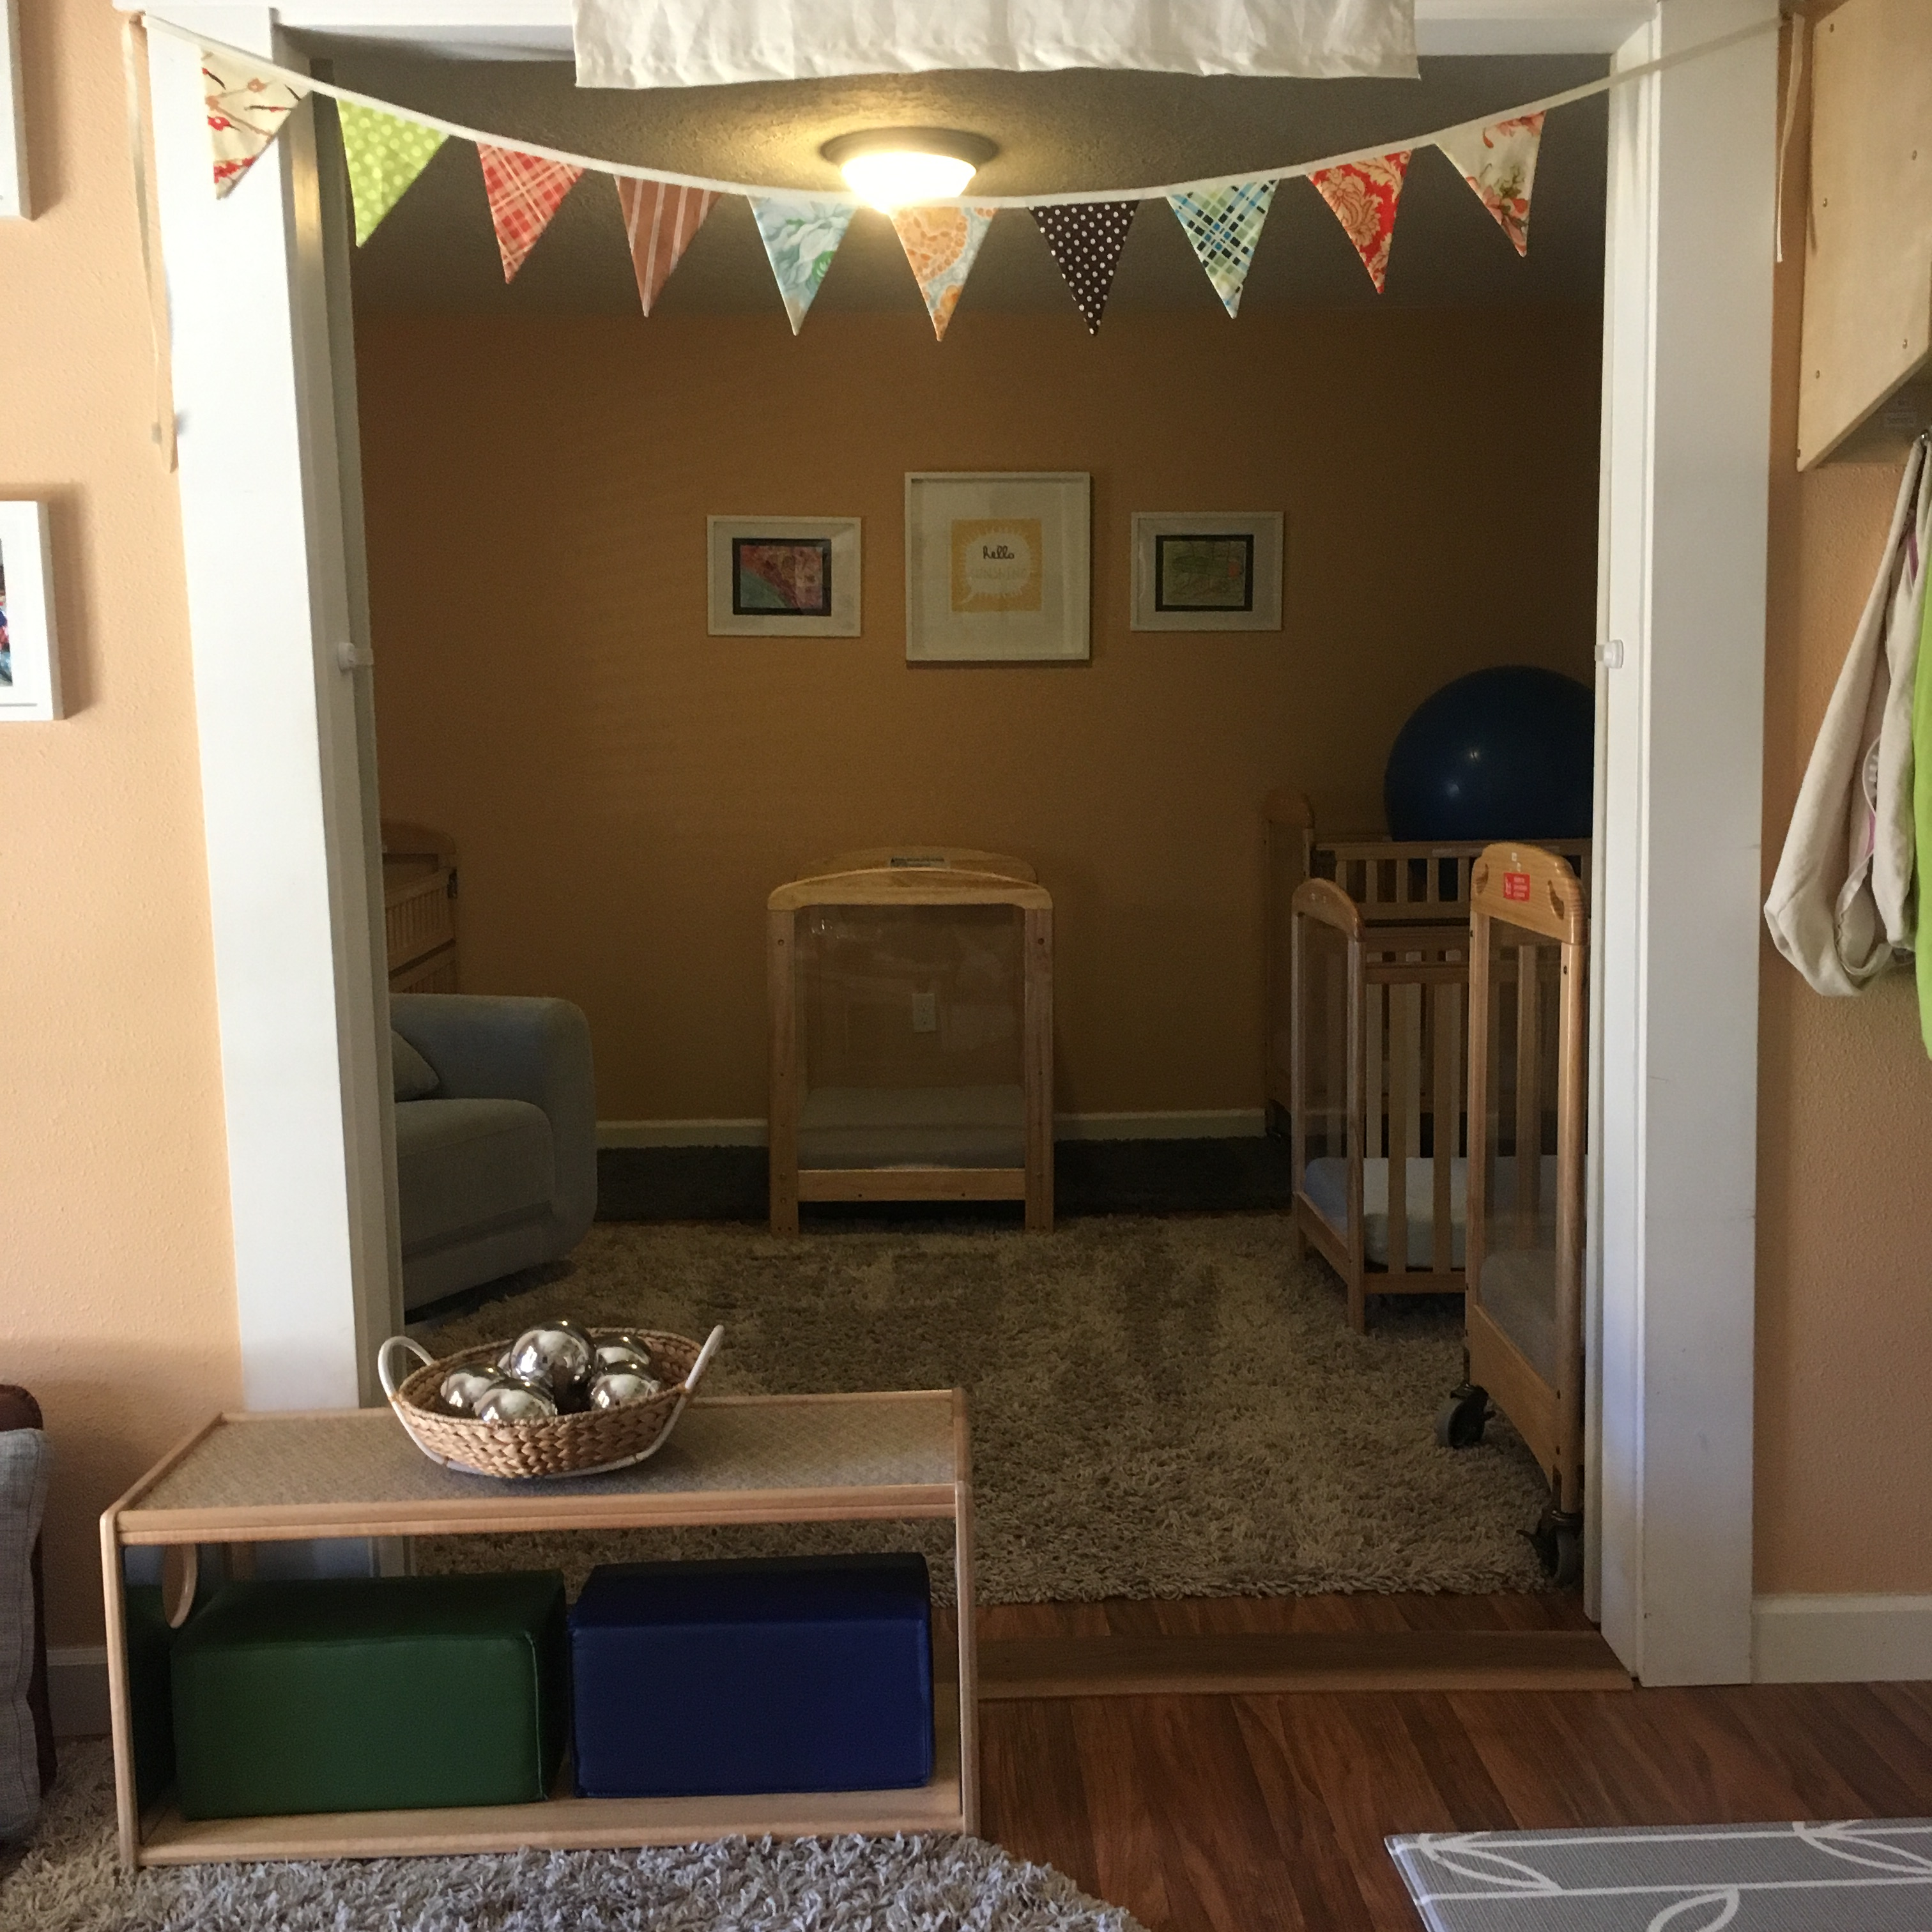 Baby room looking into baby napping space